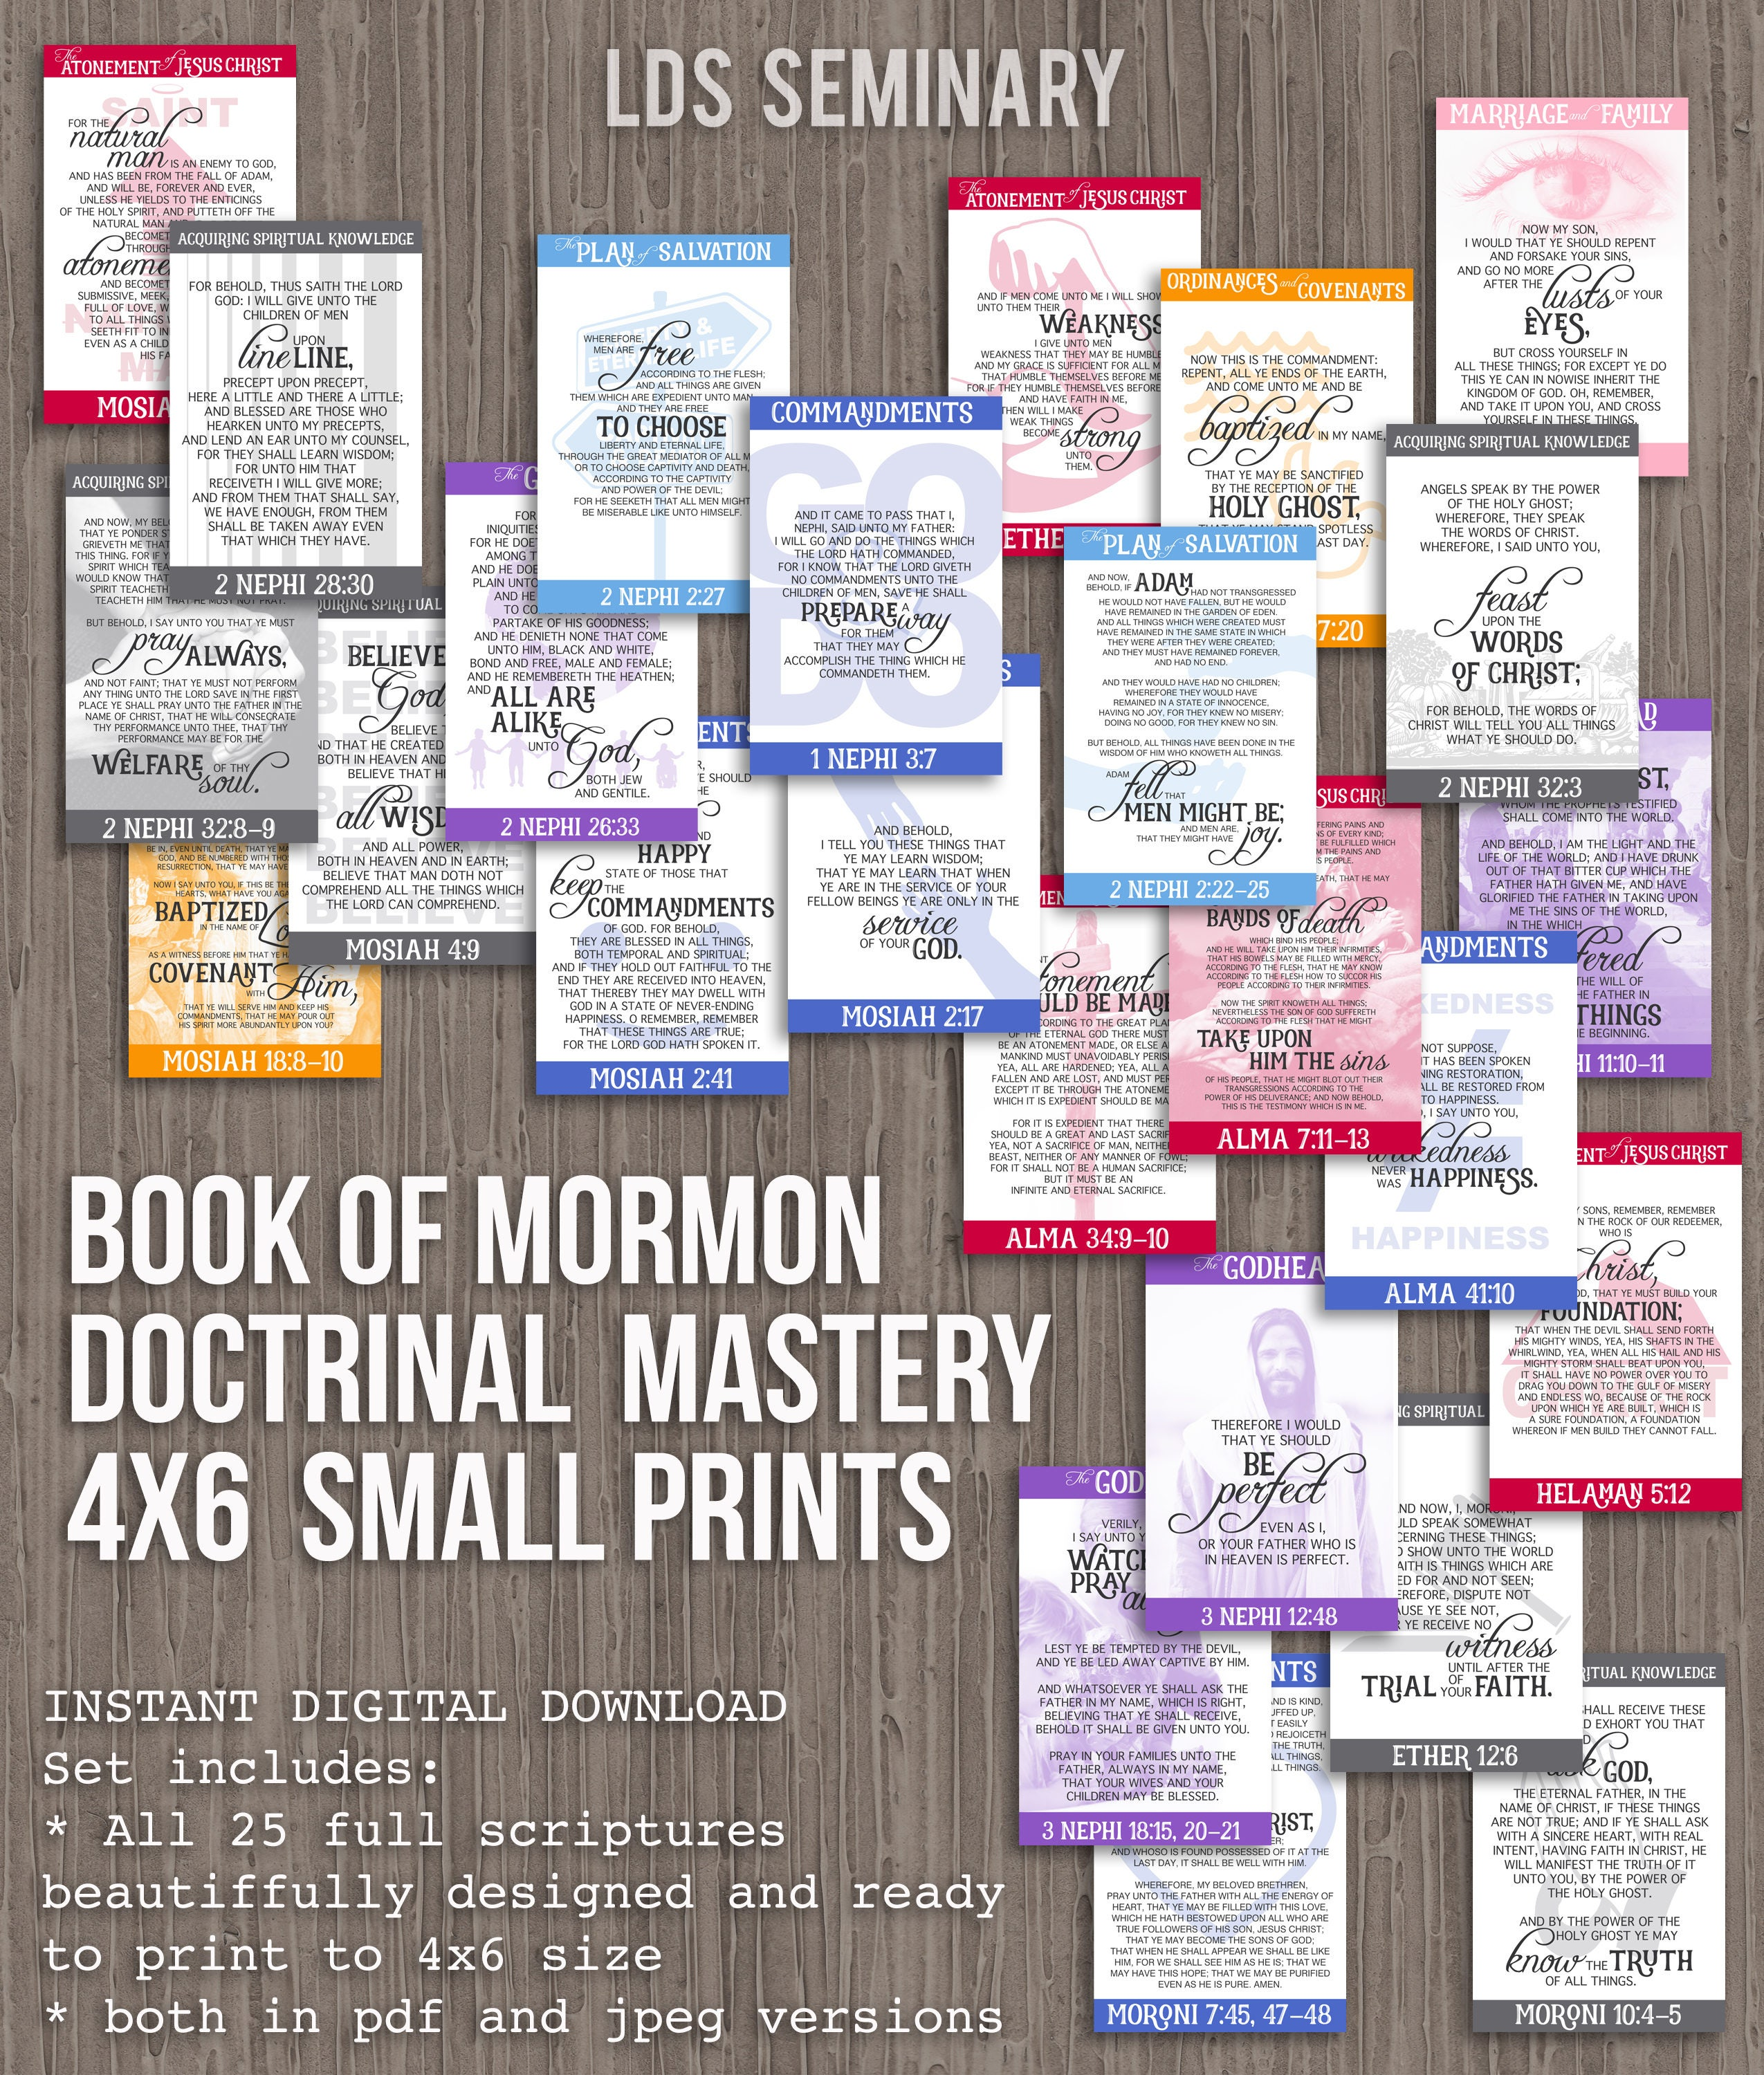 4x6 book of mormon doctrinal mastery posters for lds